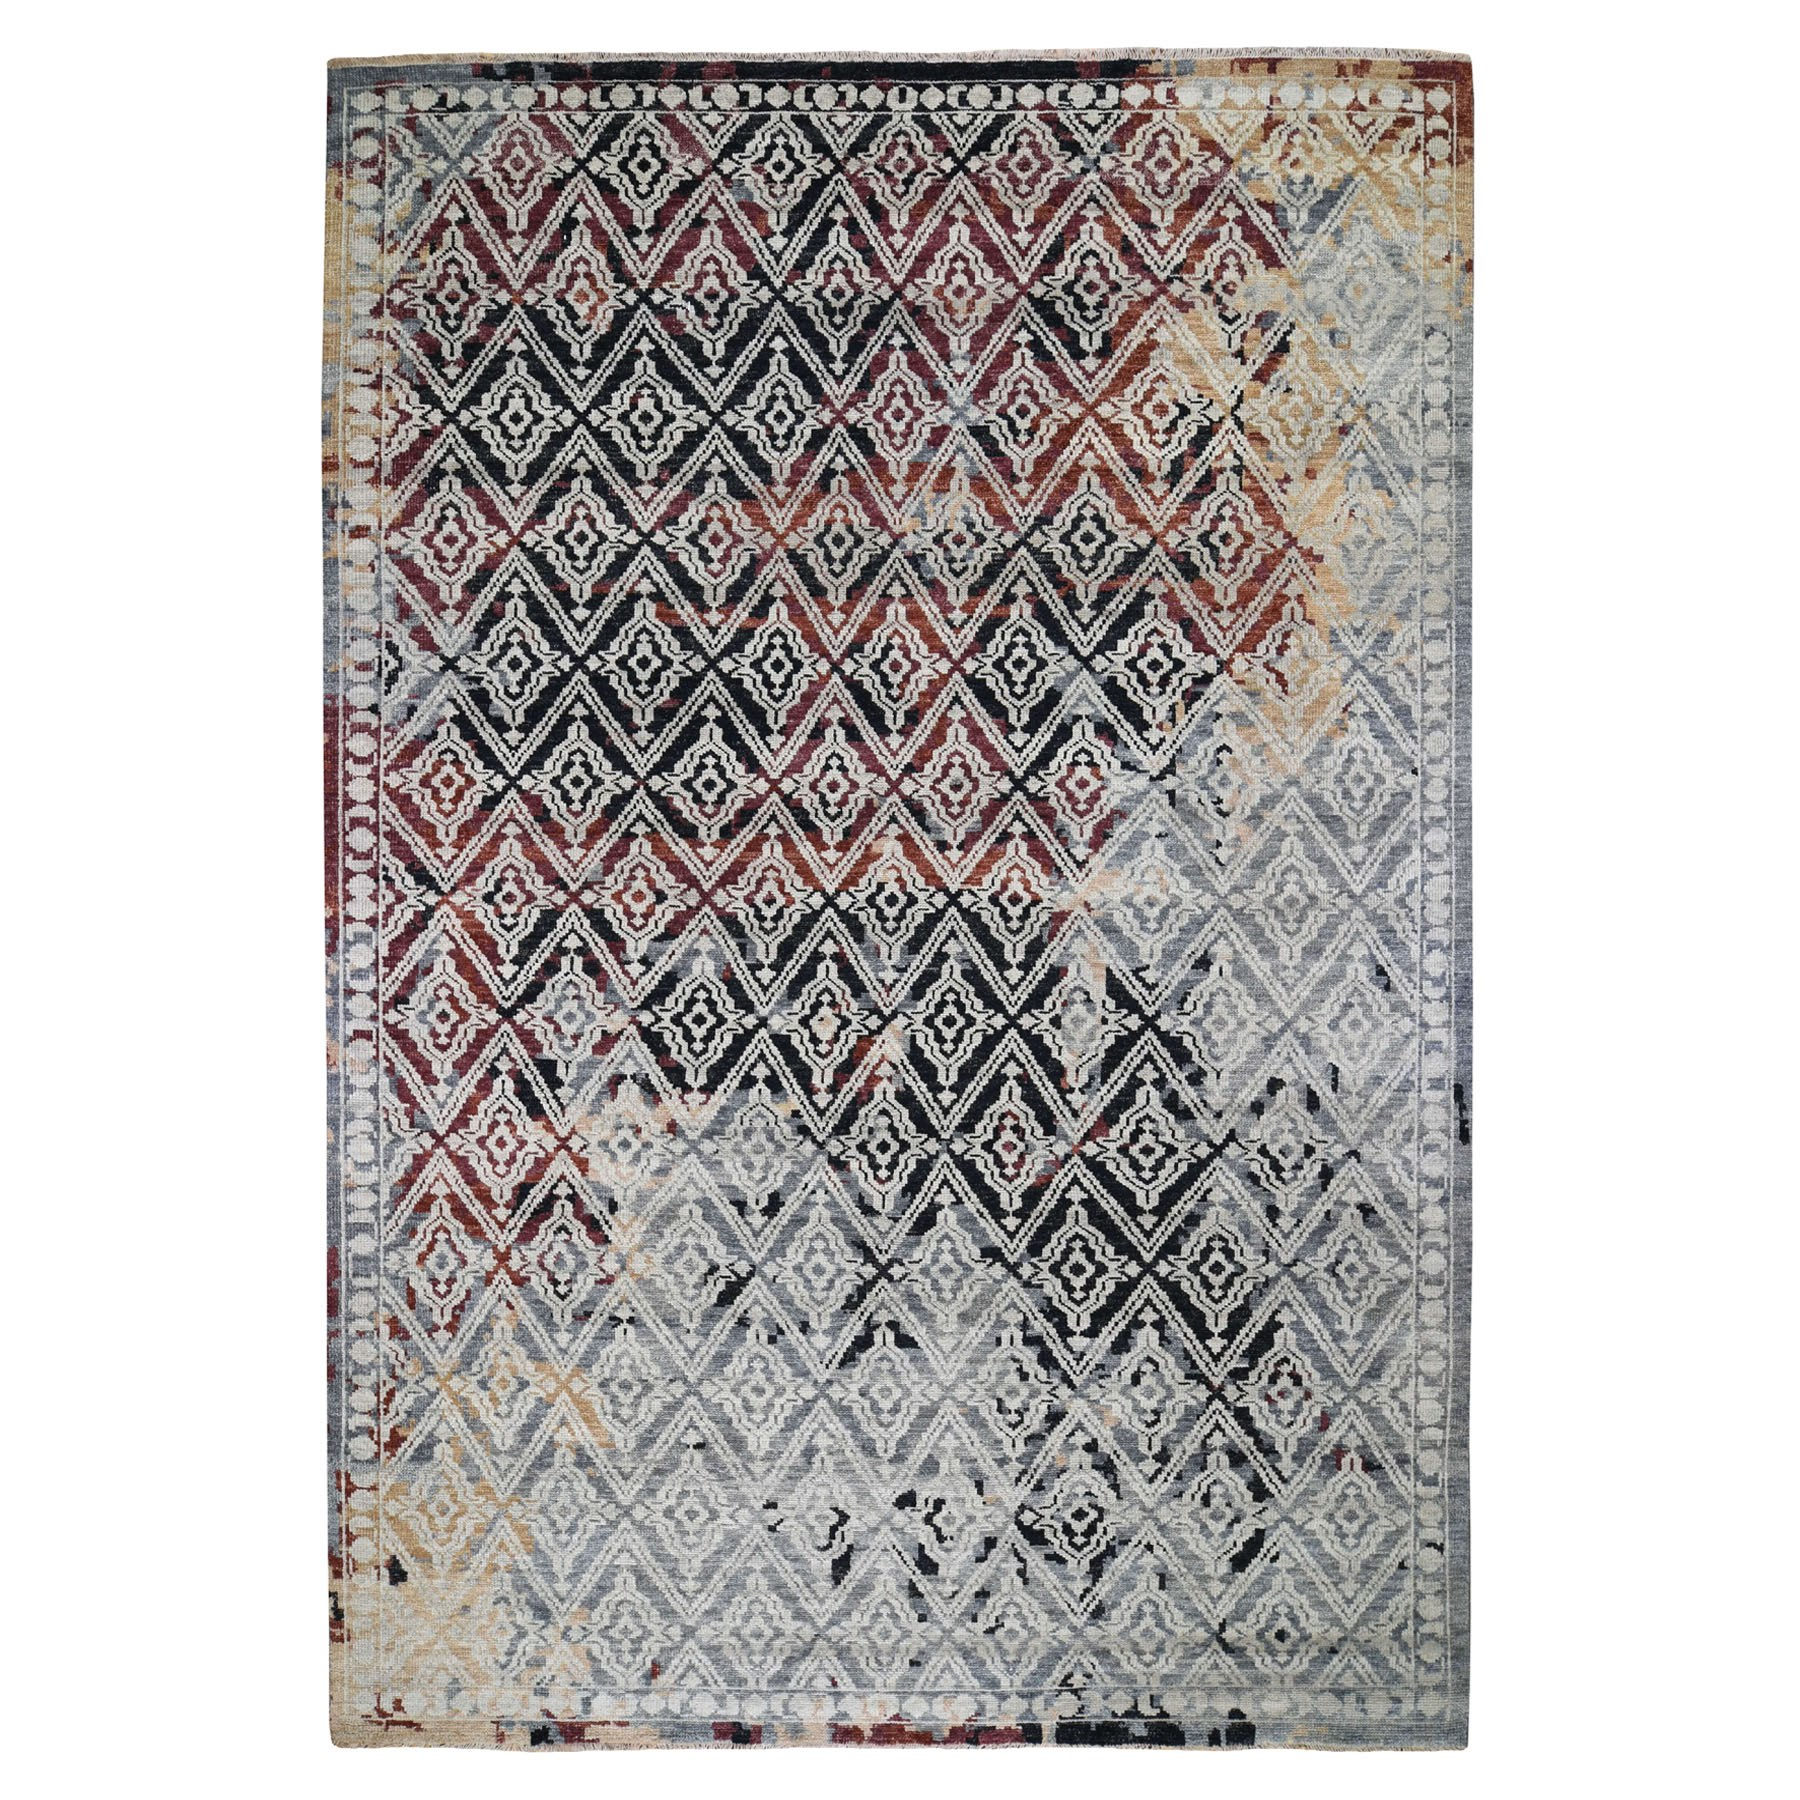 "9'10""x14' Supple Collection Erased Repetitive Mughal Design Hand Knotted Oriental Rug"